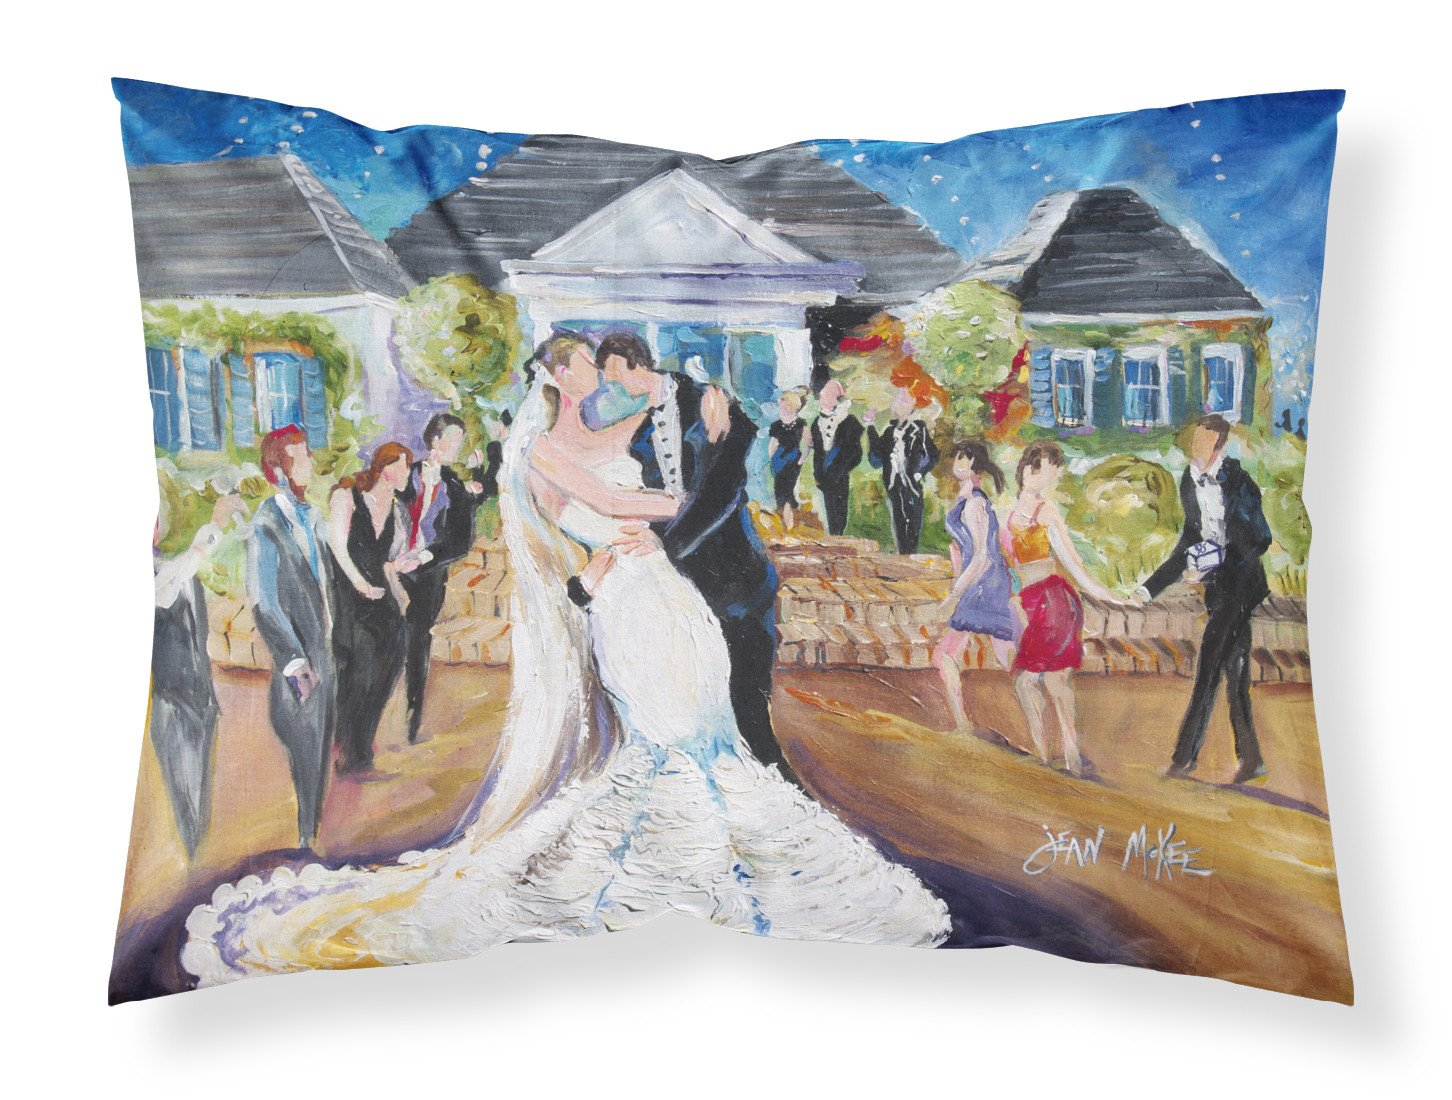 Our Wedding Day Fabric Standard Pillowcase JMK1127PILLOWCASE by Caroline's Treasures